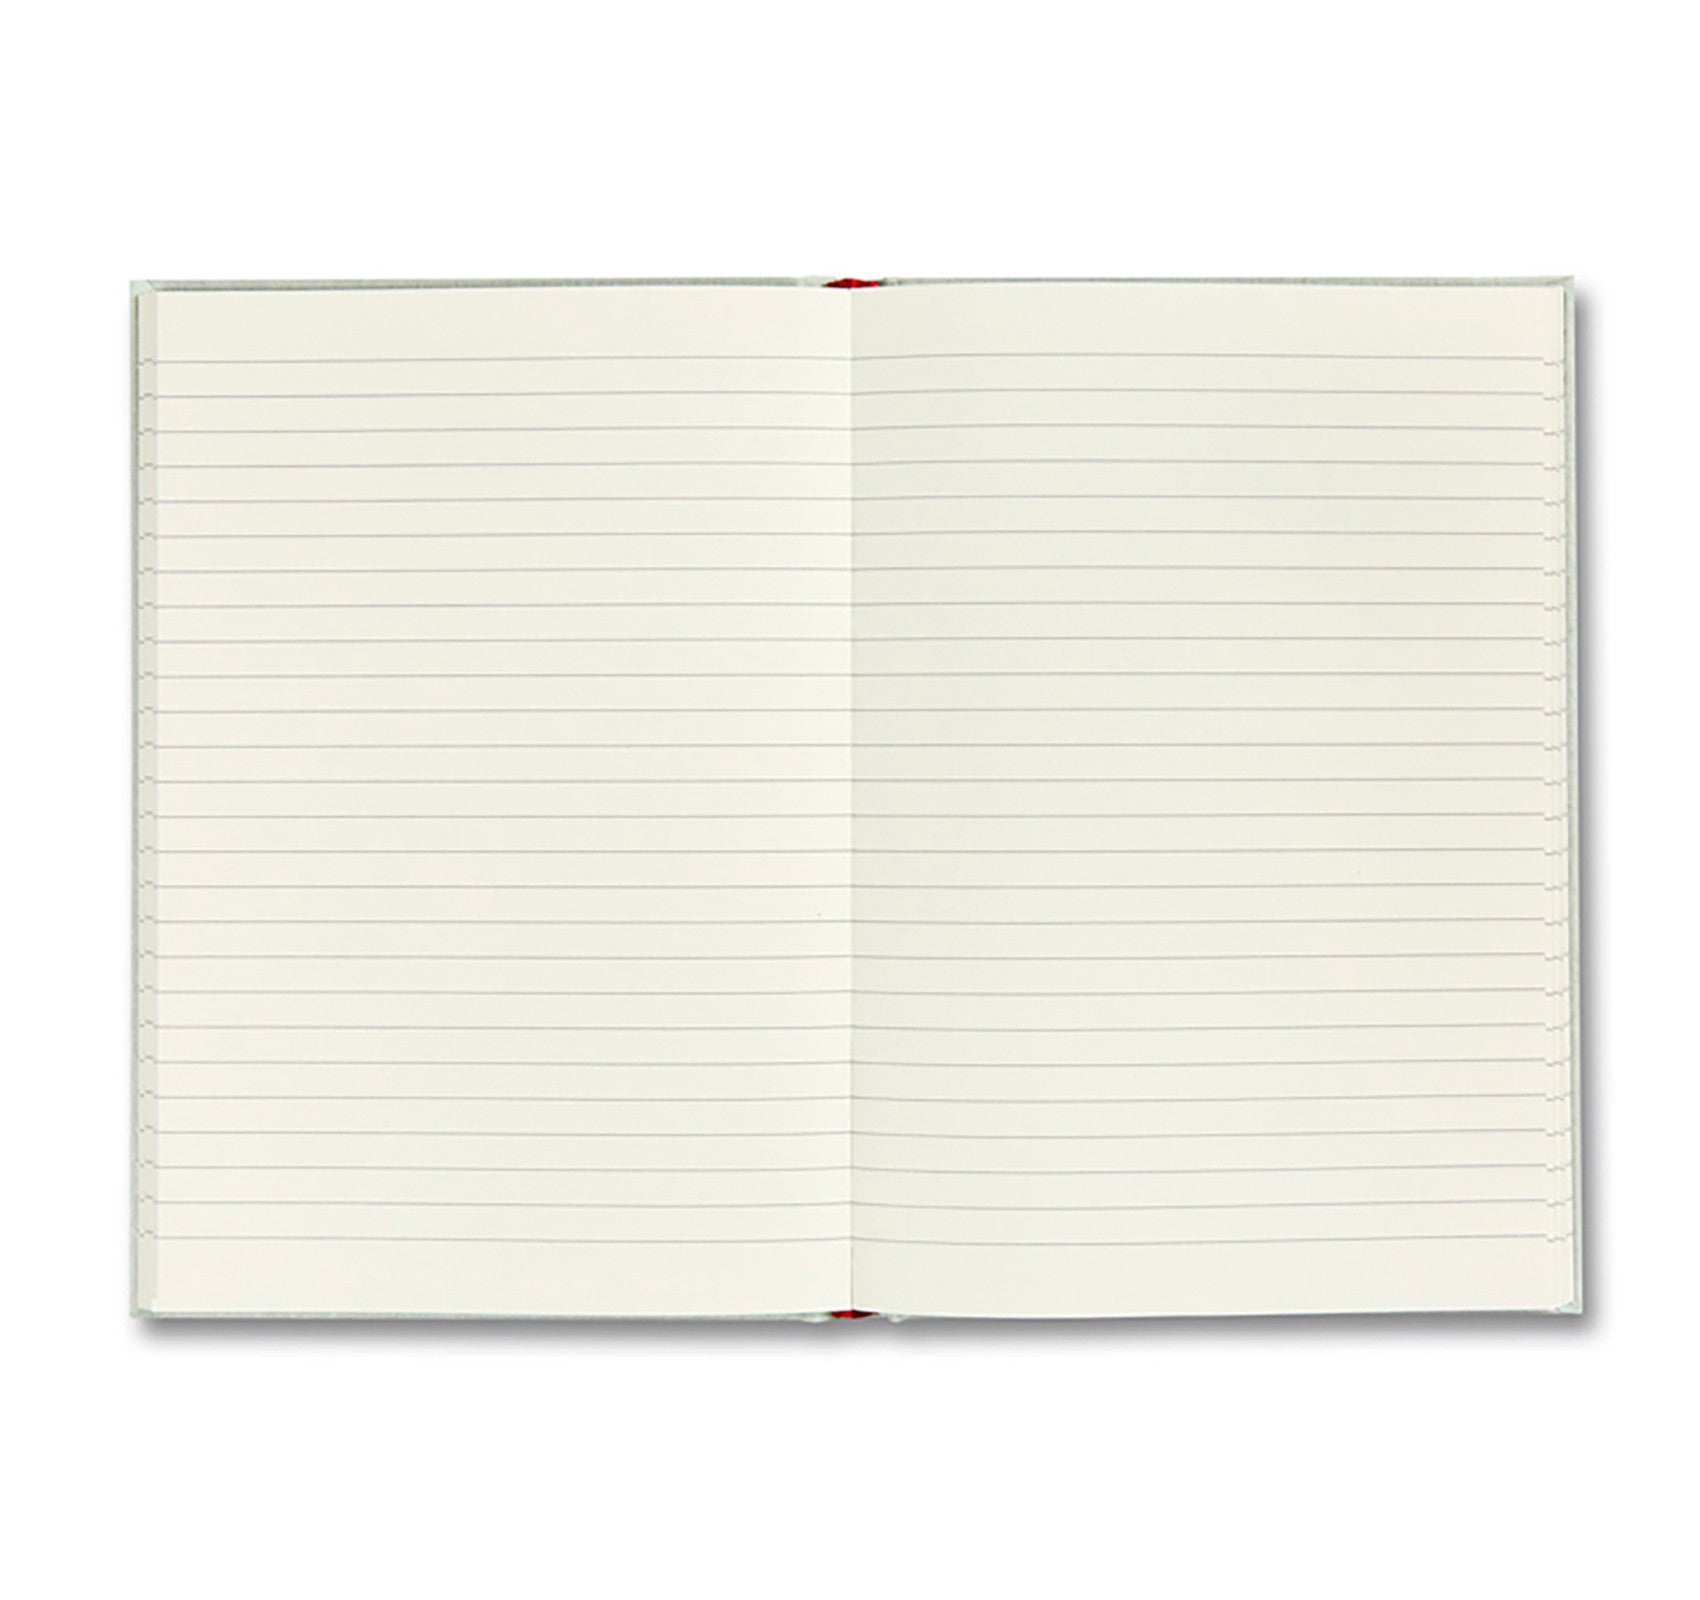 THE NARCISSISTIC CITY NOTEBOOK by Takashi Homma